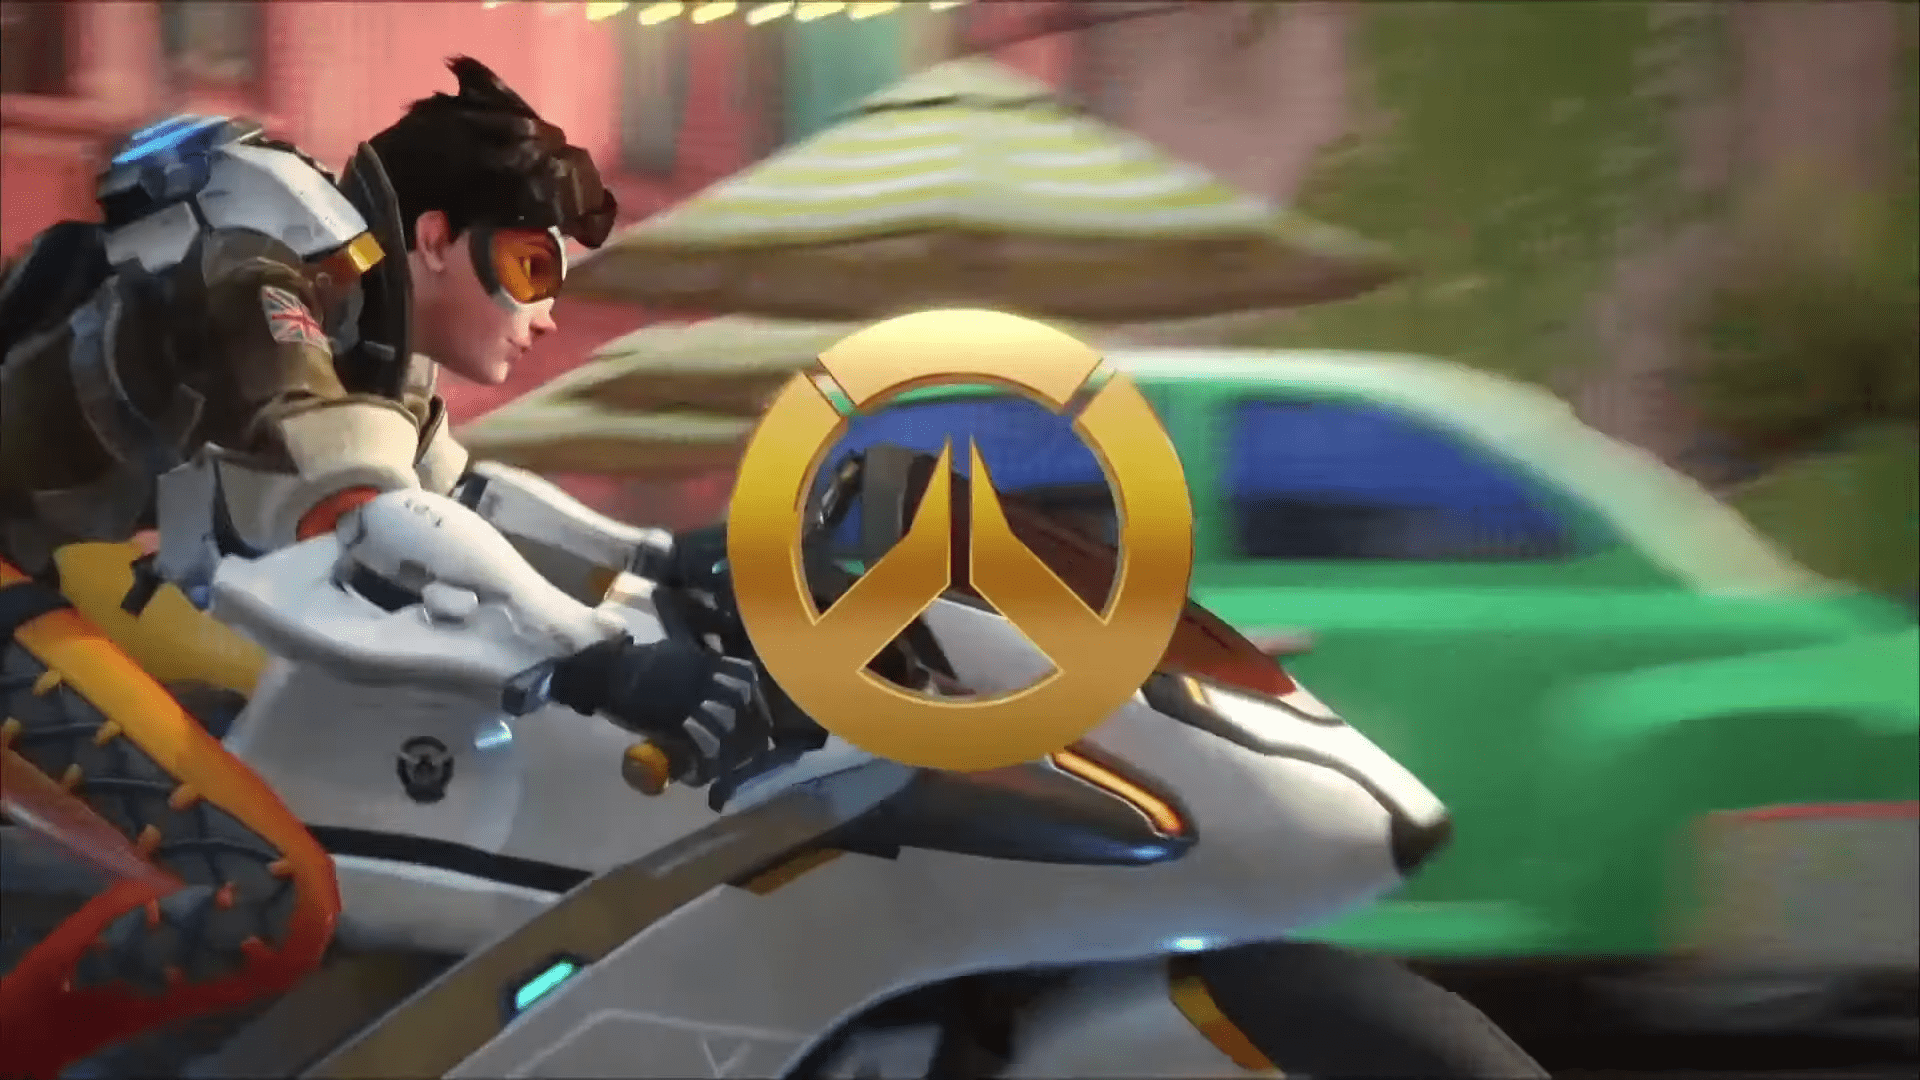 Overwatch League – Birdring Appears To Pass Out After LA Gladiators Versus Toronto Defiance